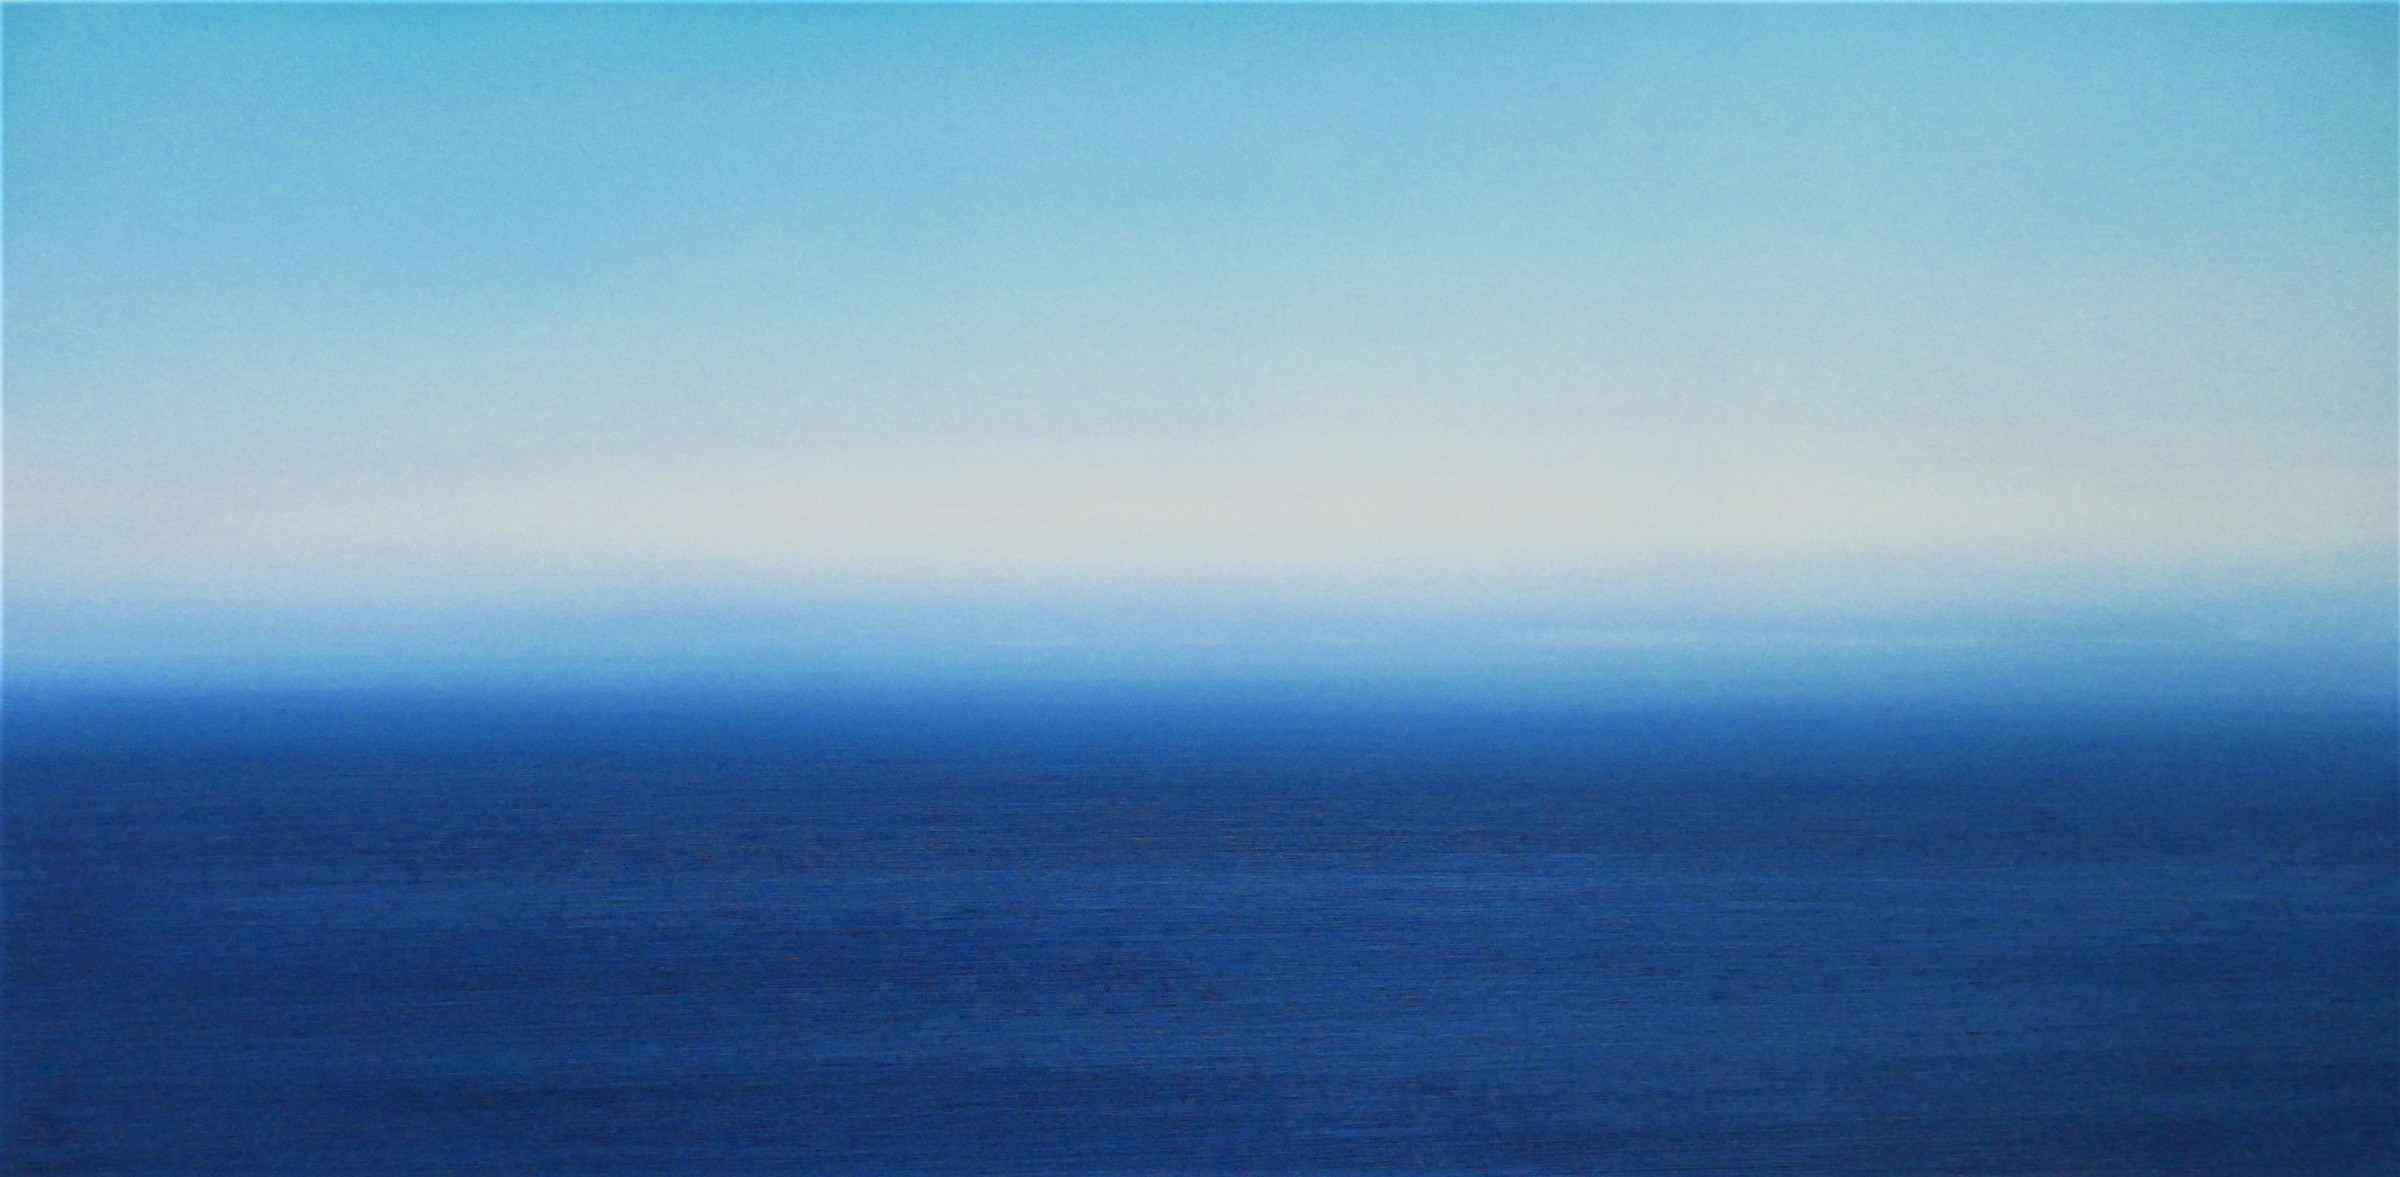 """<span class=""""link fancybox-details-link""""><a href=""""/artists/78-martyn-perryman/works/6683-martyn-perryman-summer-breeze-st-ives-2019/"""">View Detail Page</a></span><div class=""""artist""""><strong>Martyn Perryman</strong></div> <div class=""""title""""><em>Summer Breeze St Ives</em>, 2019</div> <div class=""""signed_and_dated"""">Signed on the reverse</div> <div class=""""medium"""">Oil on canvas<br /> Not Framed</div> <div class=""""dimensions"""">70 x 140cm</div><div class=""""price"""">£1,200.00</div><div class=""""copyright_line"""">Own Art £120 x 10 months, 0% APR</div>"""